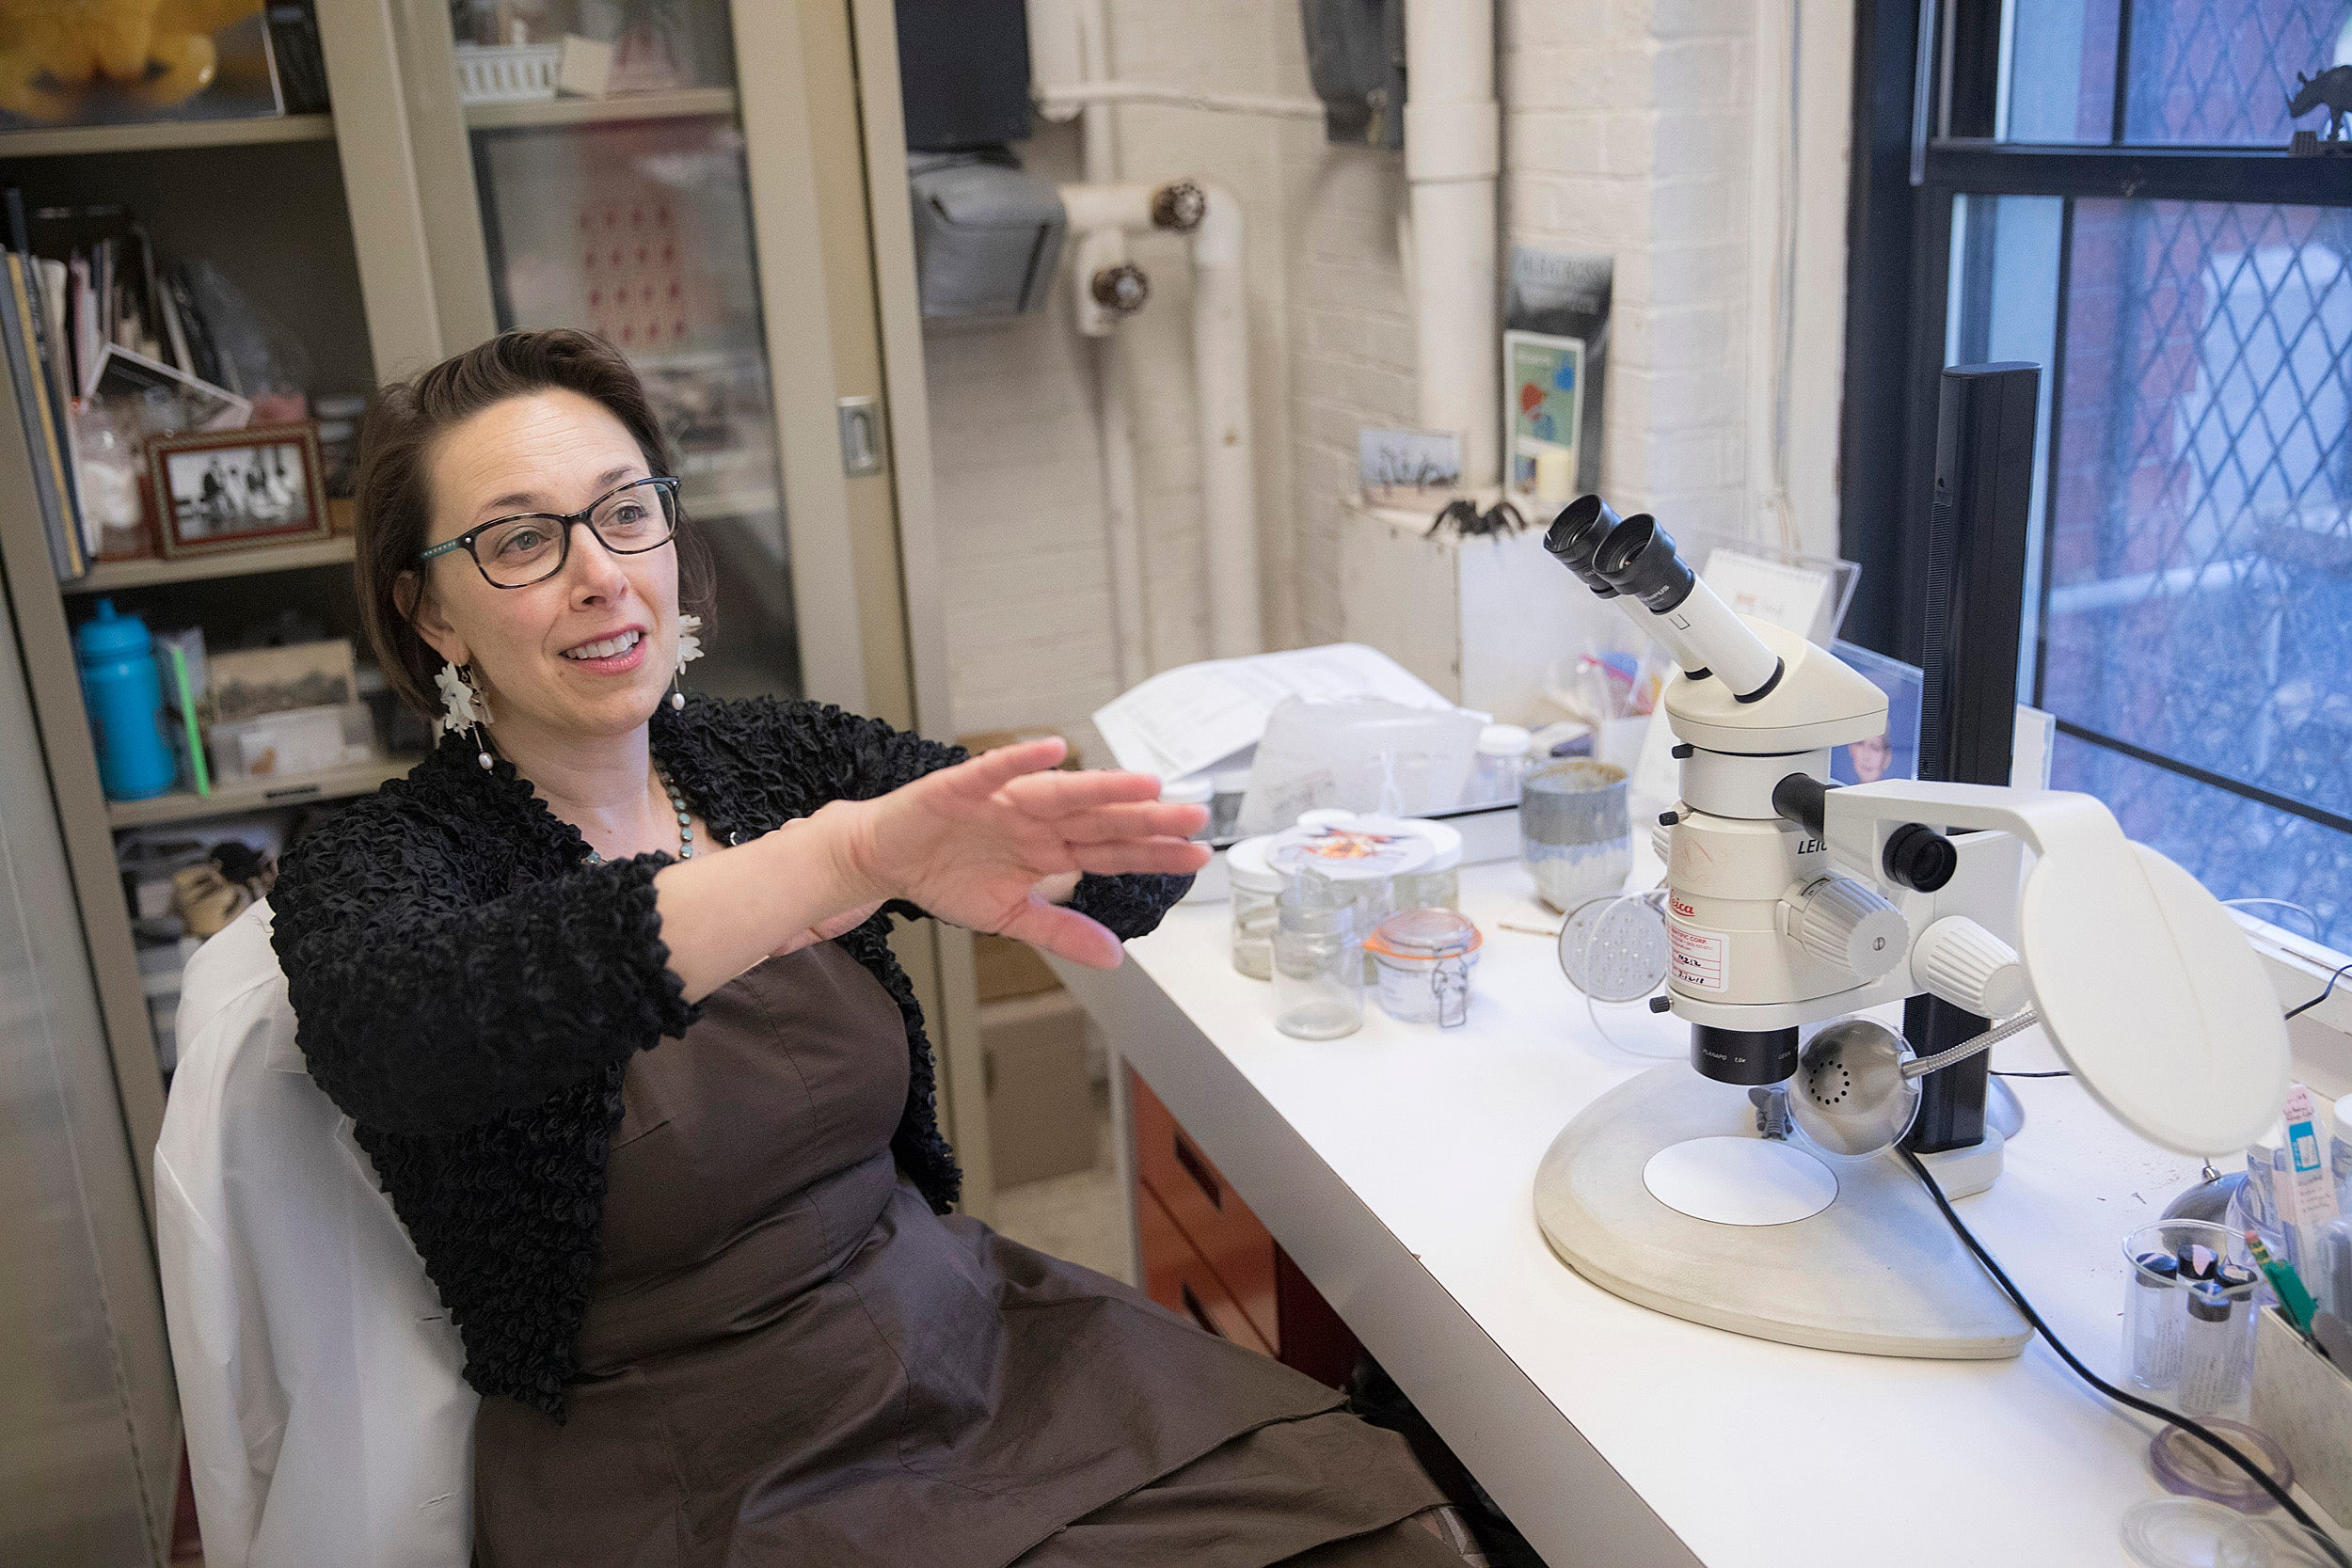 Sarah Kariko is the lead author of a new study that examines how a red, jewel-like spider gets its color and why it doesn't fade when preserved in ethanol.